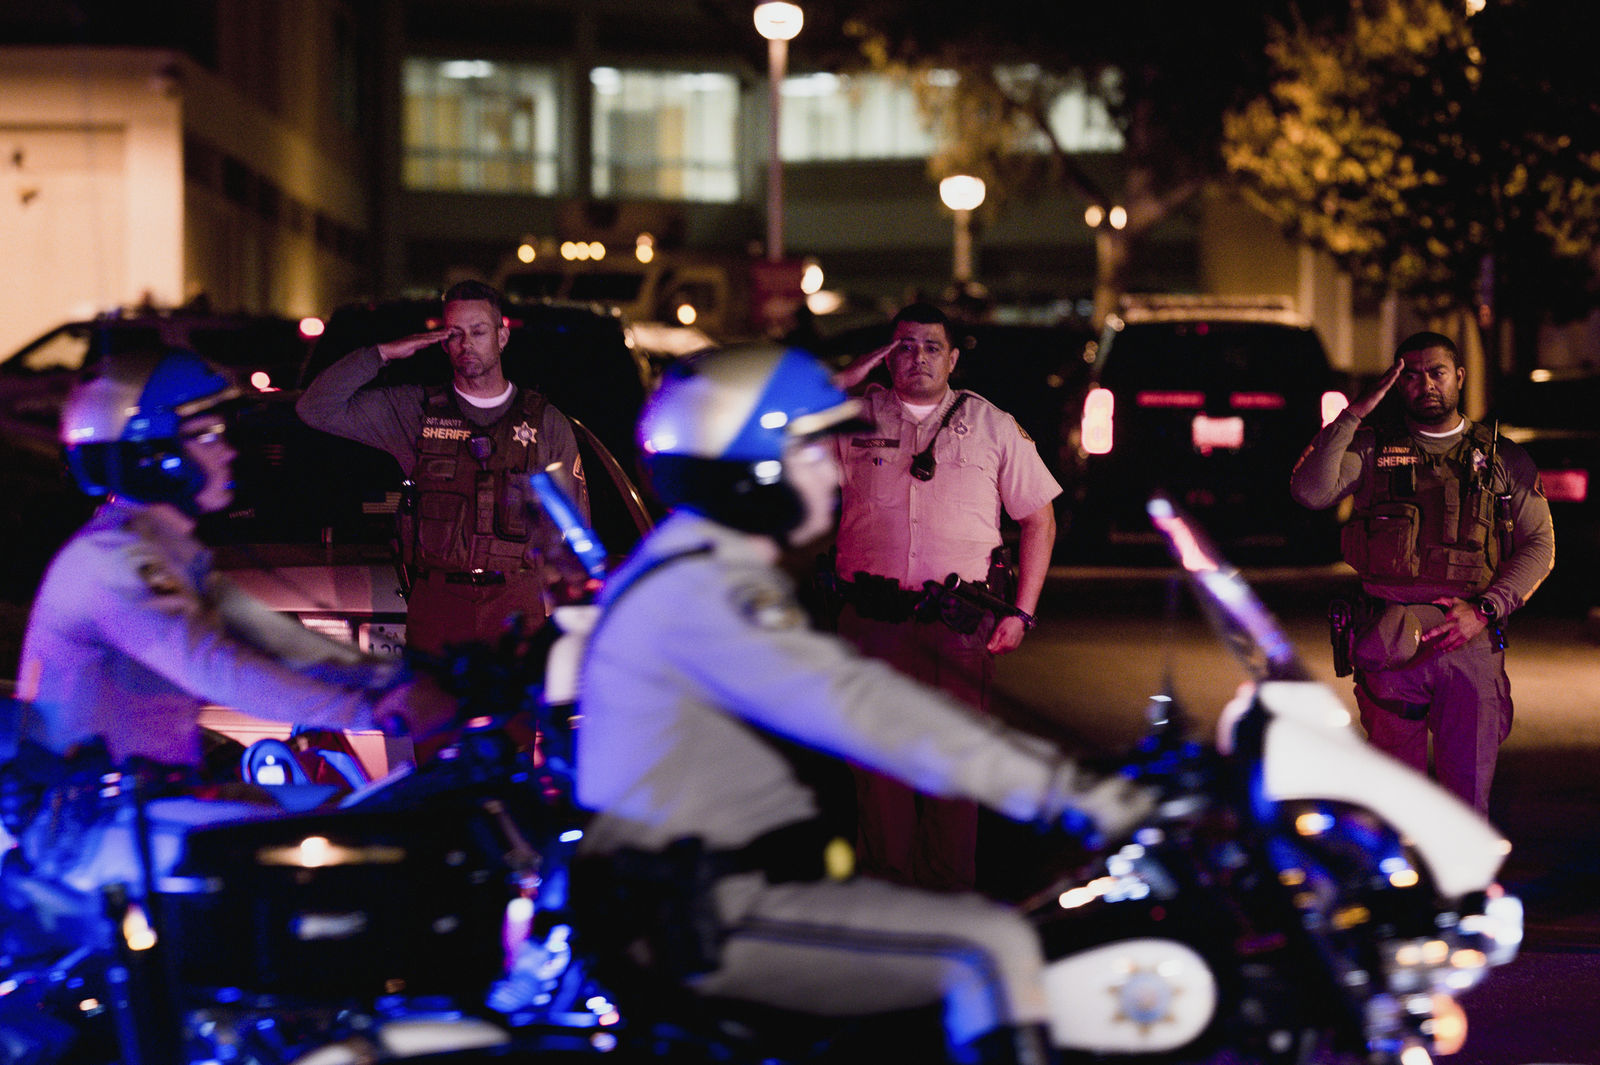 Sheriff deputies salute as California Highway Patrol motorcycle officers lead the procession for a fallen California Highway Patrol officer at Riverside University Health System Medical Center in Moreno Valley, Calif., on Monday, Aug 12, 2019. Moye was killed during a shootout following a traffic stop